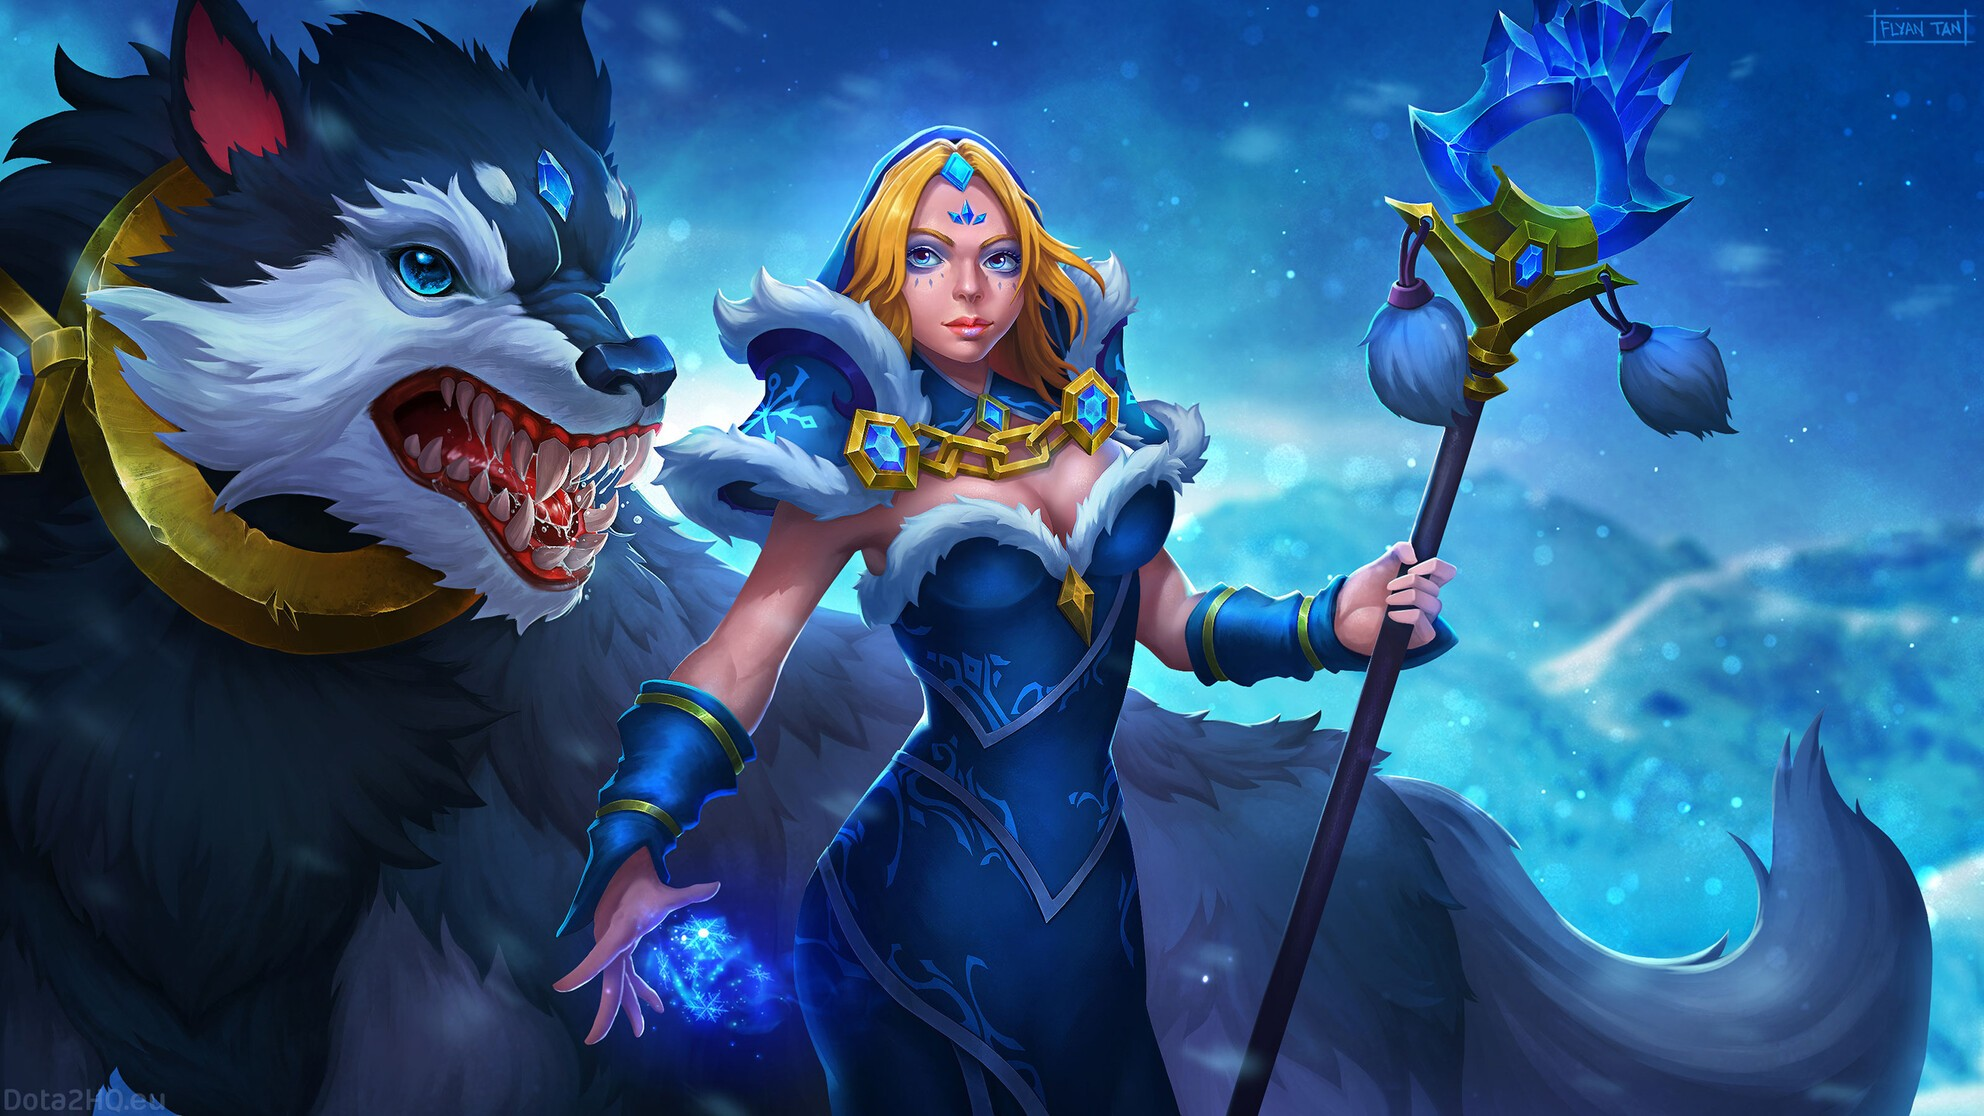 ᐈ The Heroes in Dota 2 - An Introductory Guide for Crystal Maiden • WePlay!